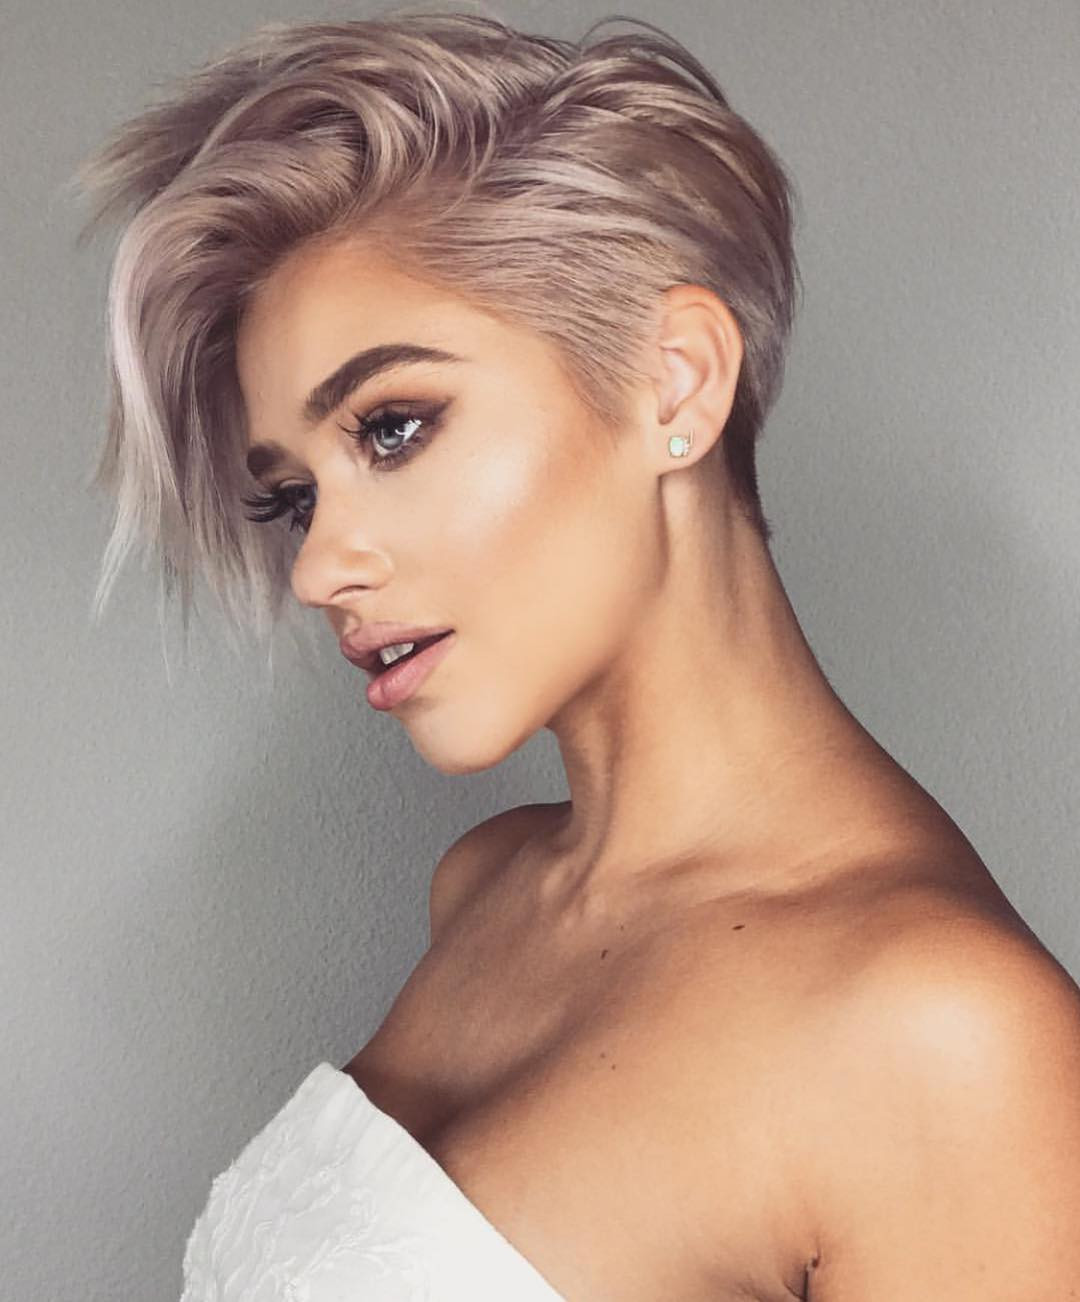 Best ideas about Short Haircuts For Girls 2019 . Save or Pin 10 Trendy Very Short Haircuts for Female Cool Short Hair Now.